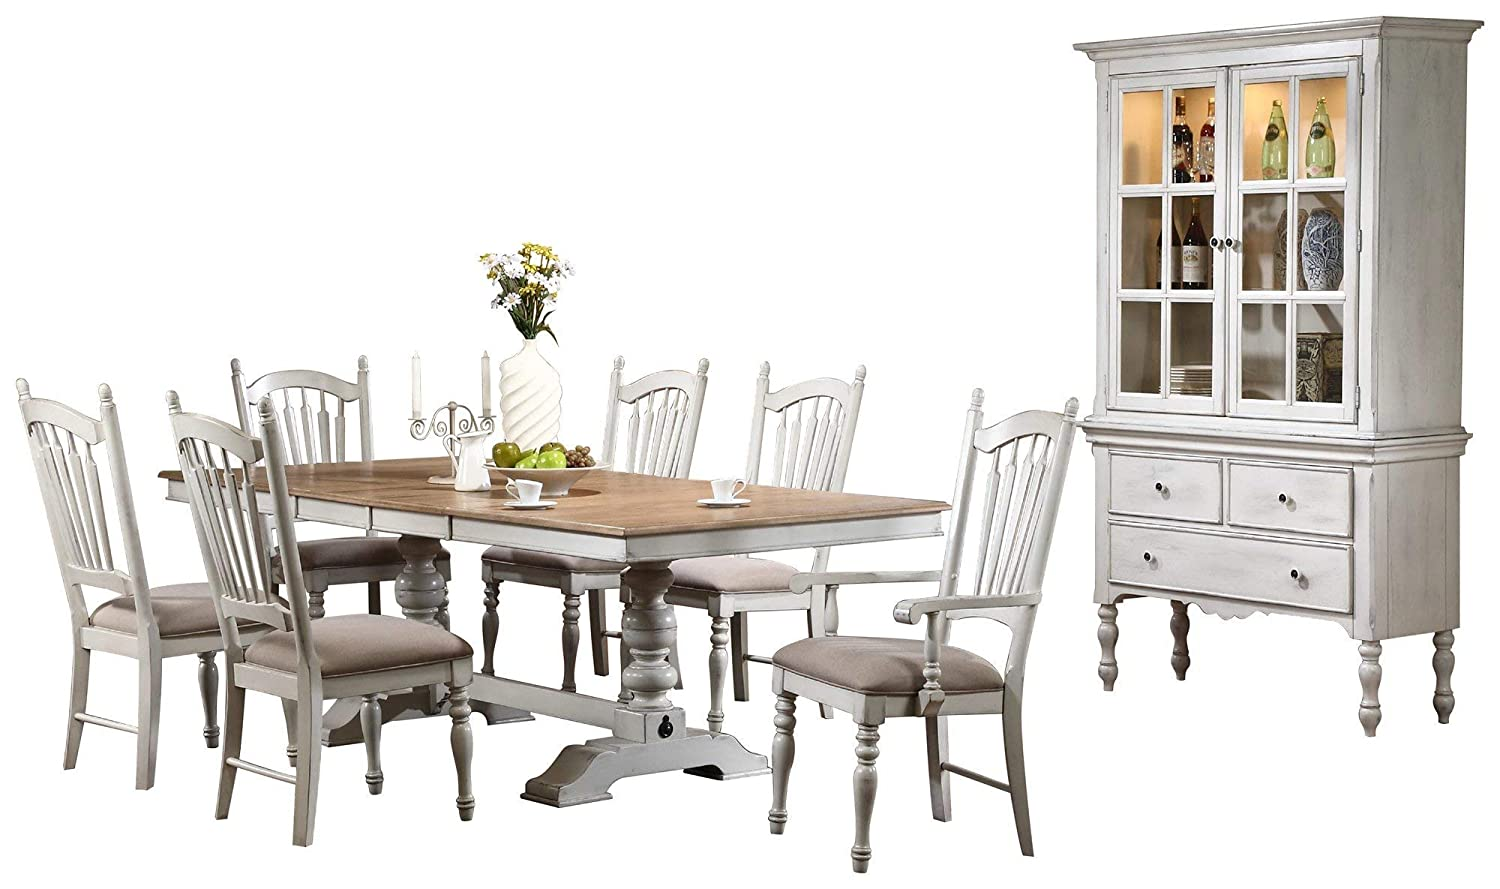 amazon com haggens rusticated country 10pc dining set table 2 arm rh amazon com dining room set with buffet and hutch counter height dining set with buffet